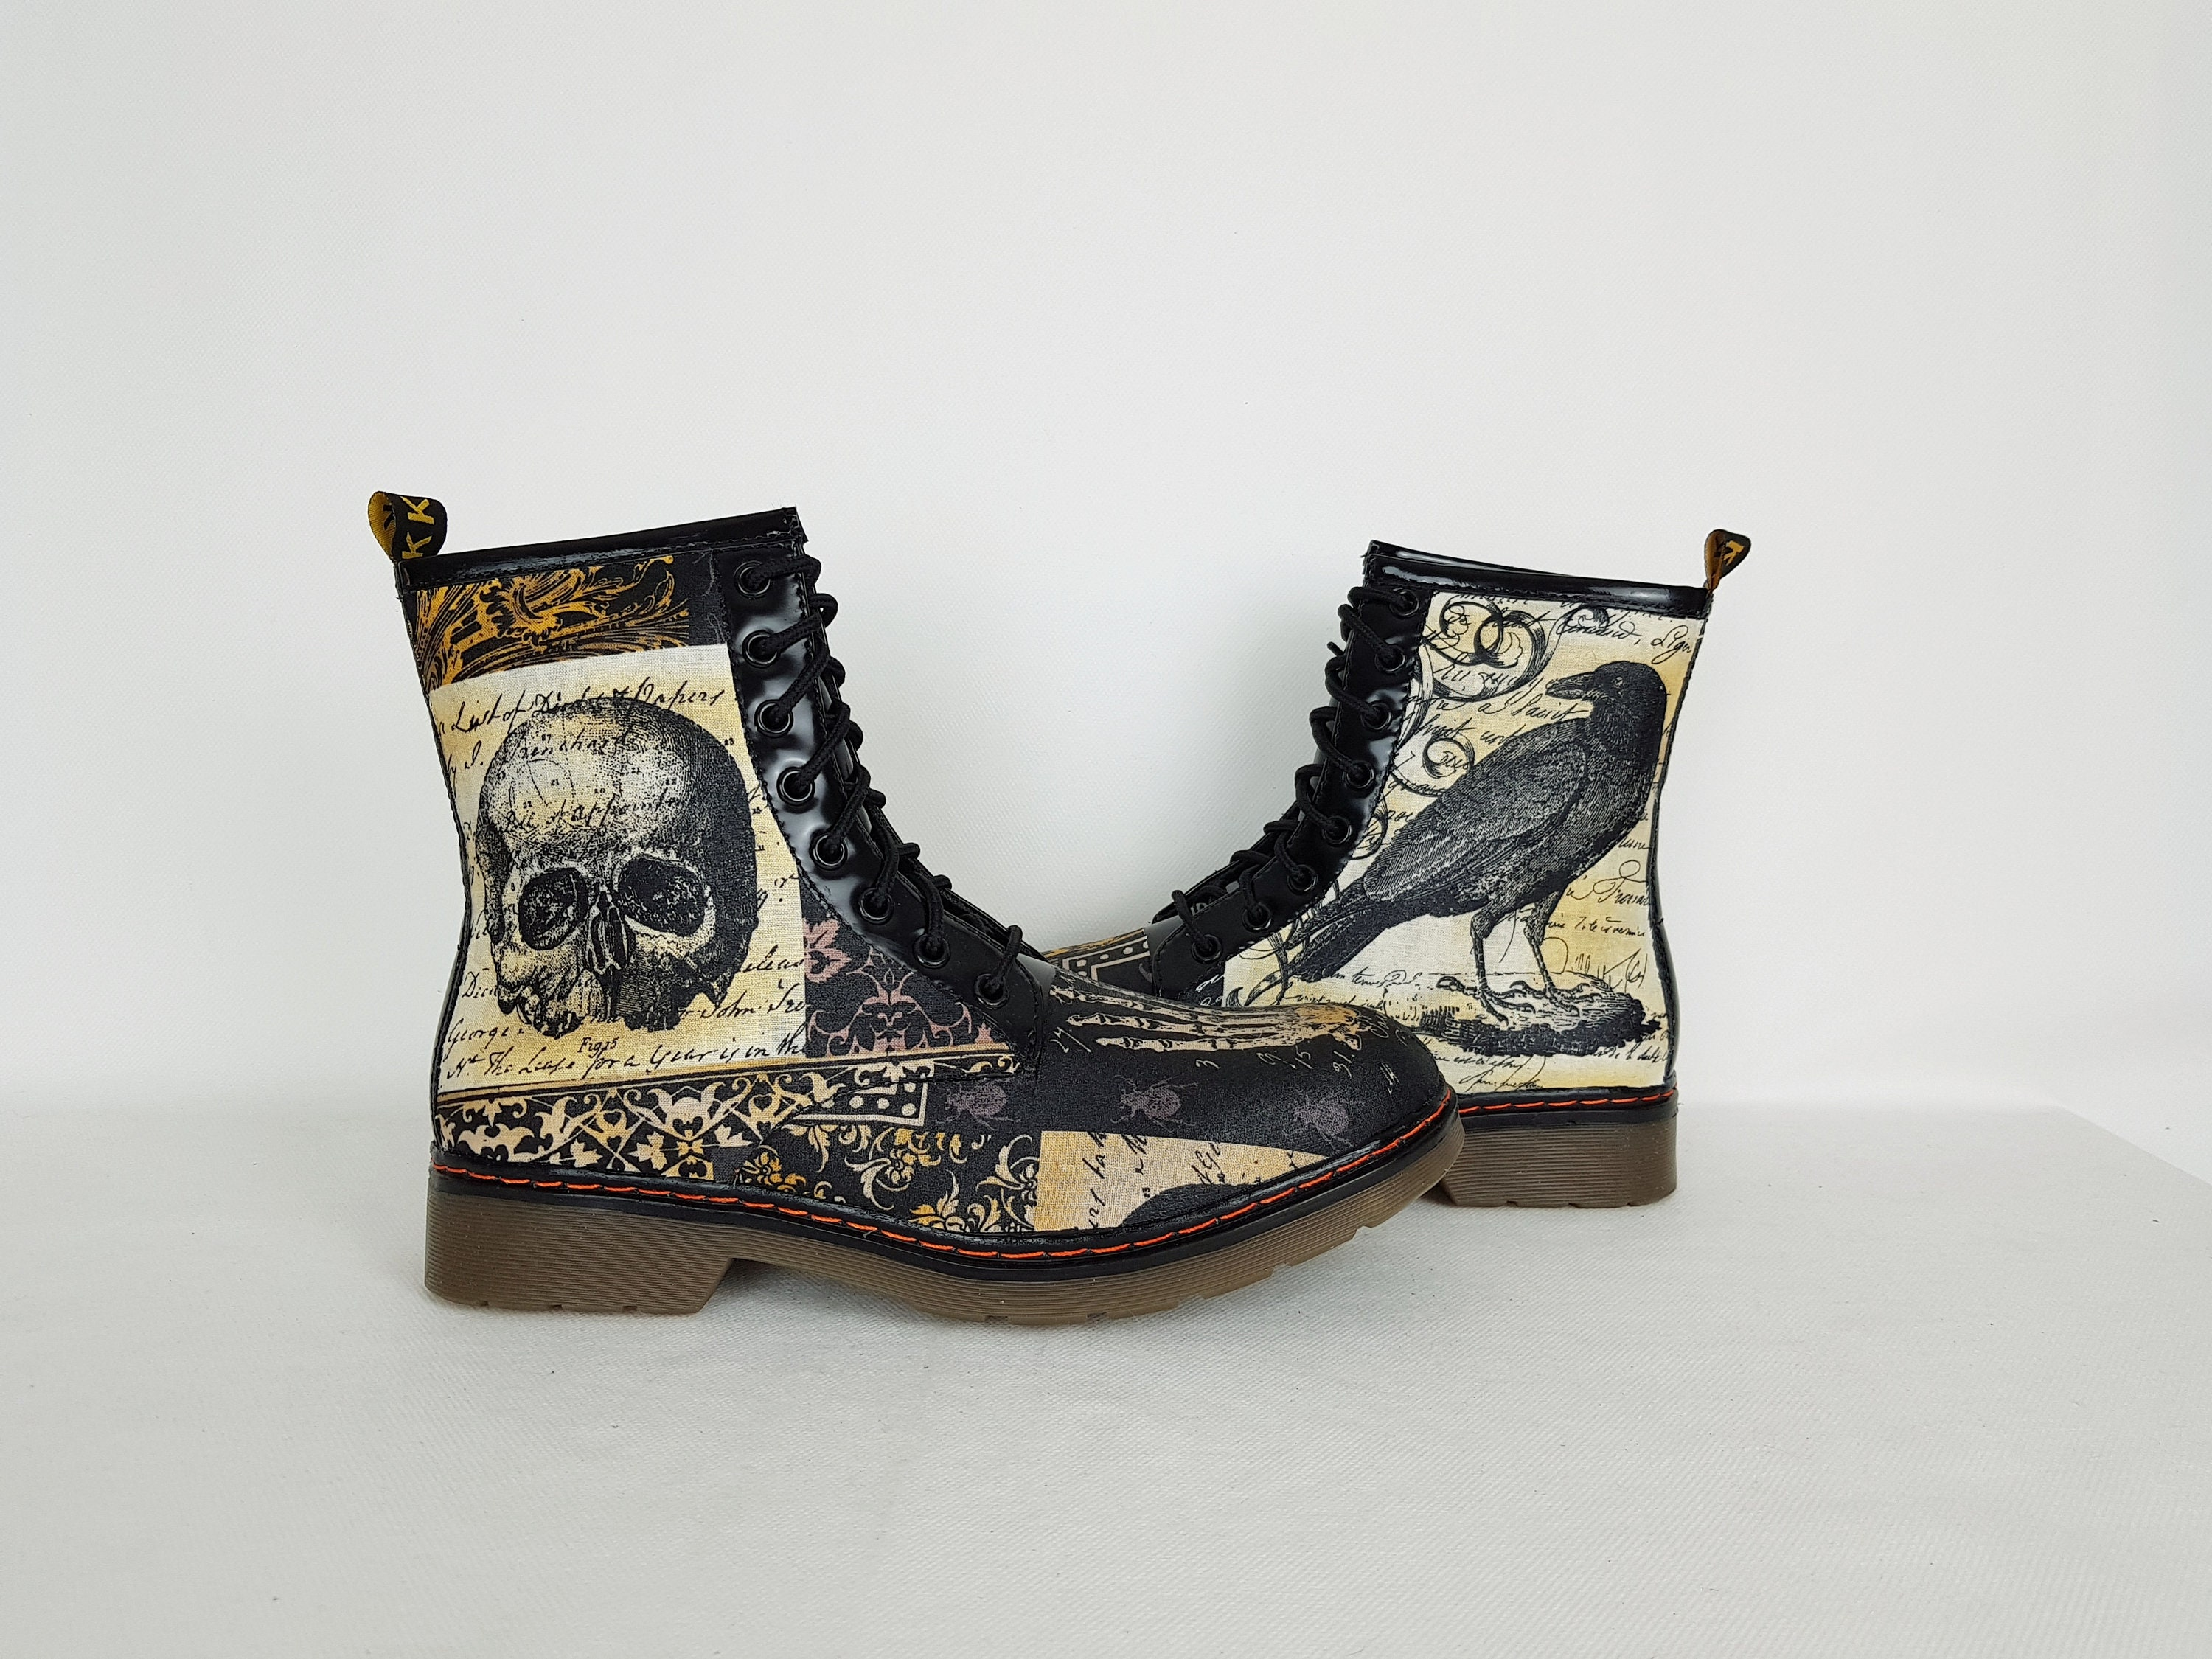 Crow shoes, nevermore, goth nevermore shoes, alternative, women shoes, nevermore goth shoes, skulls shoes, steampunk shoes, gothic, gift for her, halloween 7baaf3